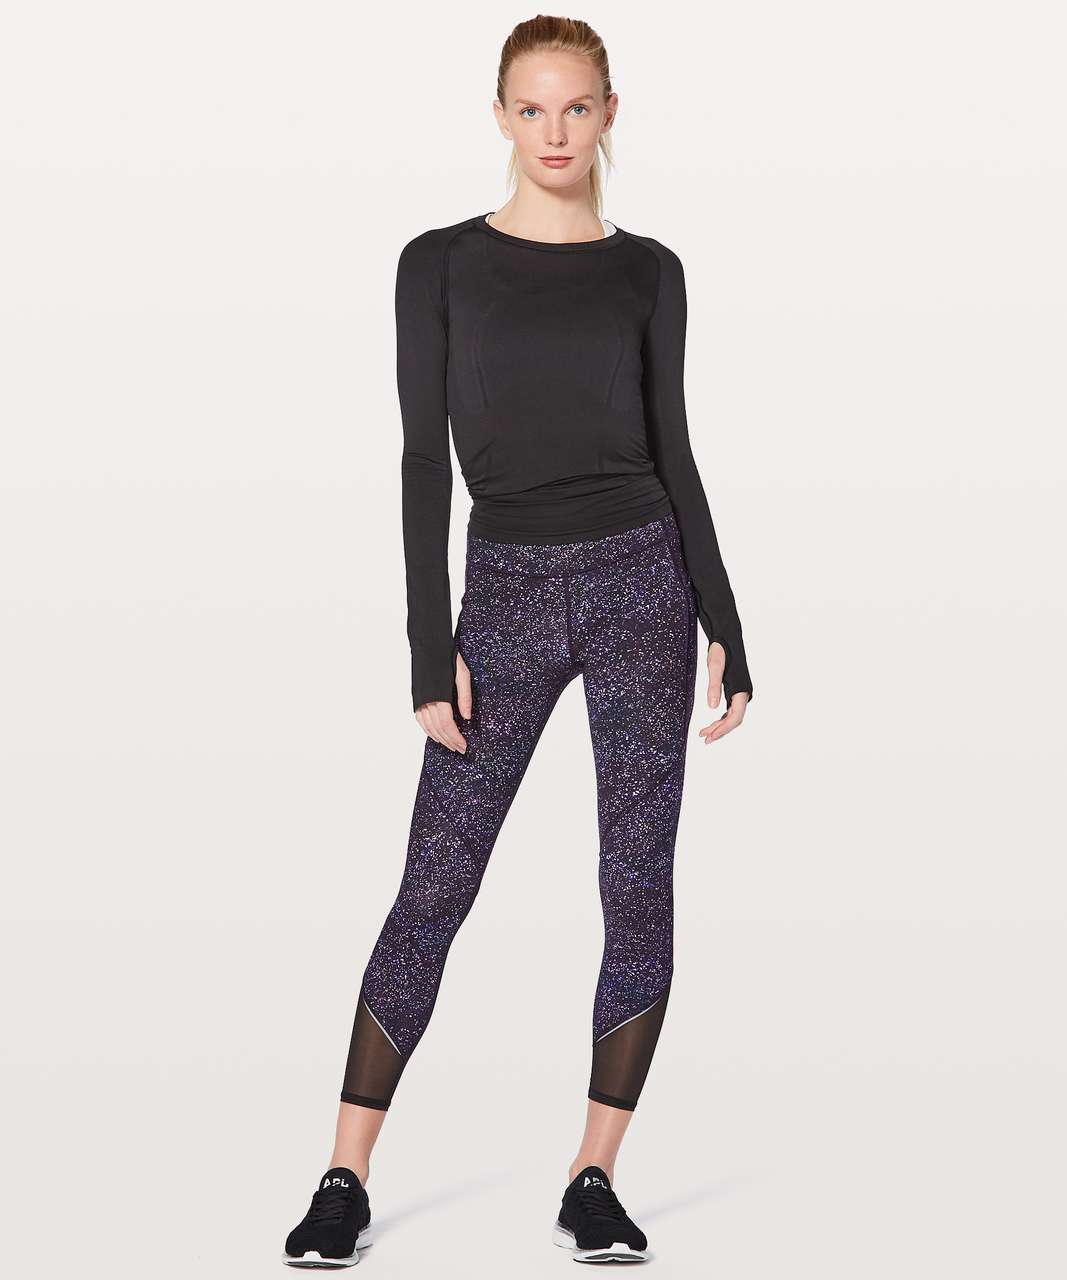 "Lululemon Gait Keeper 7/8 Tight 25"" - Crystalline Multi"